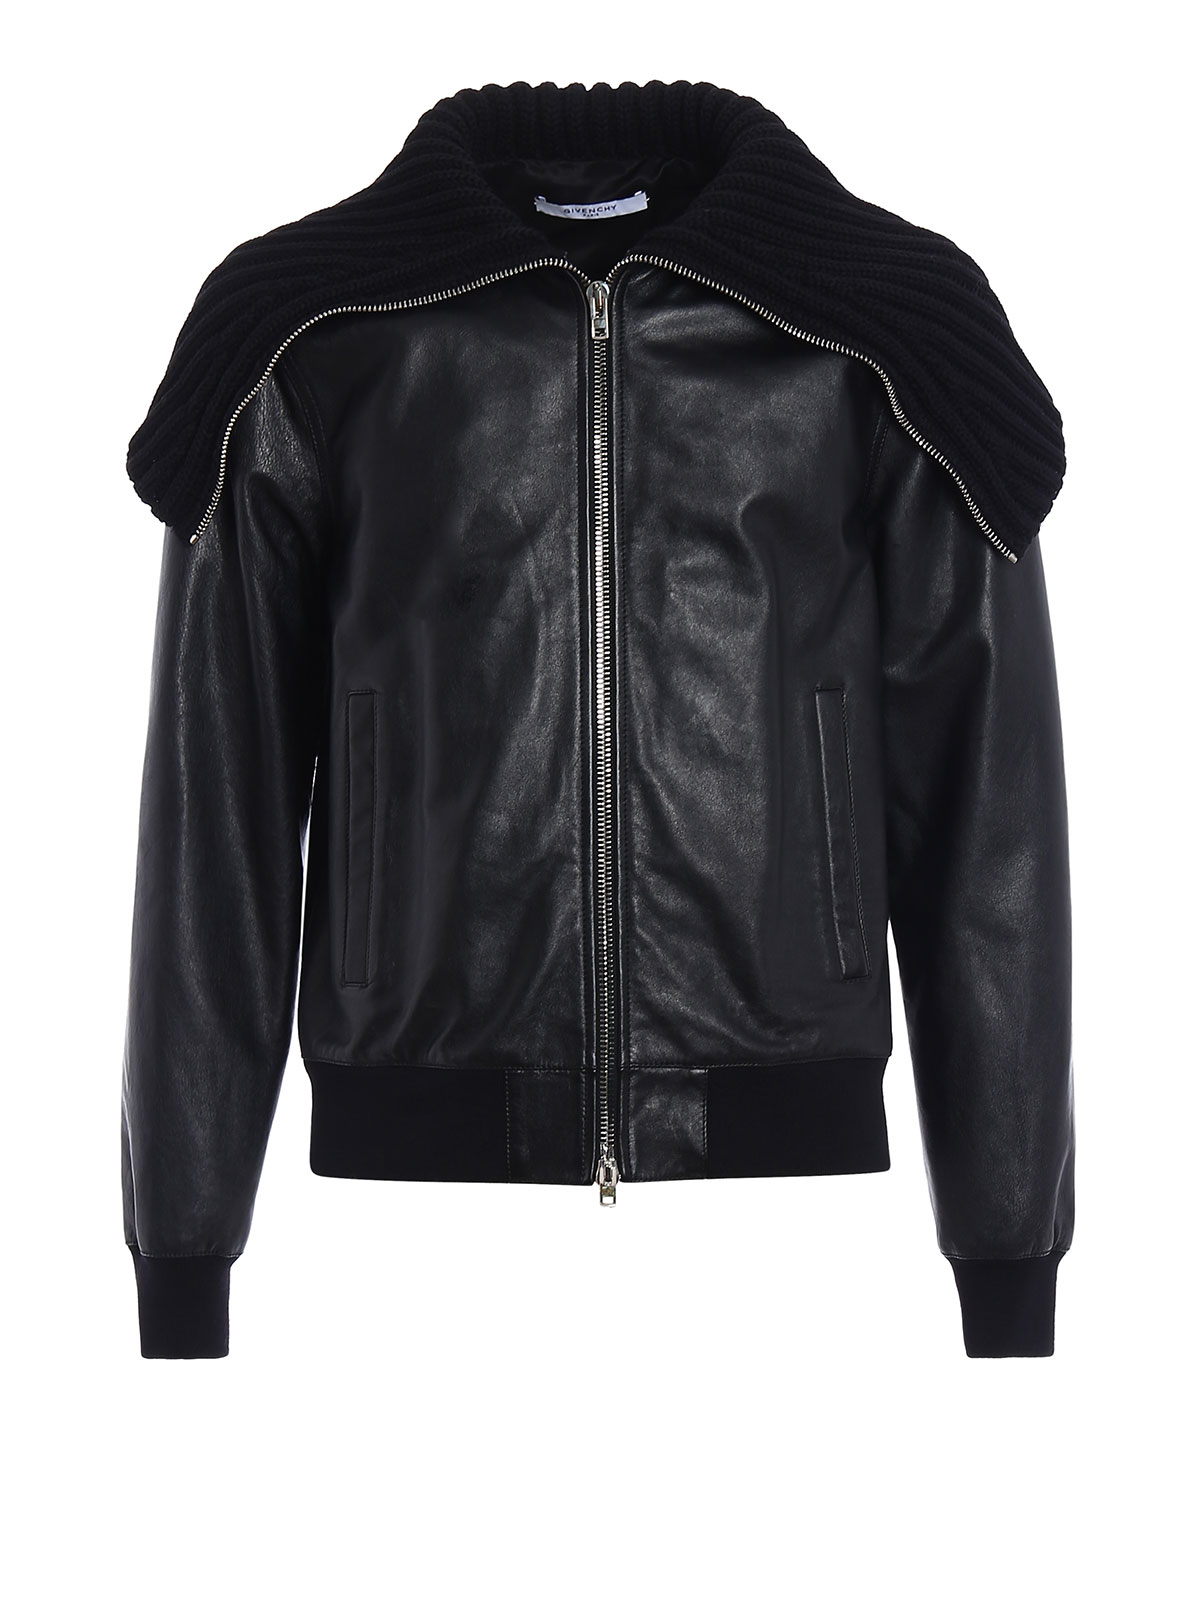 Find great deals on eBay for leather and wool jacket. Shop with confidence.